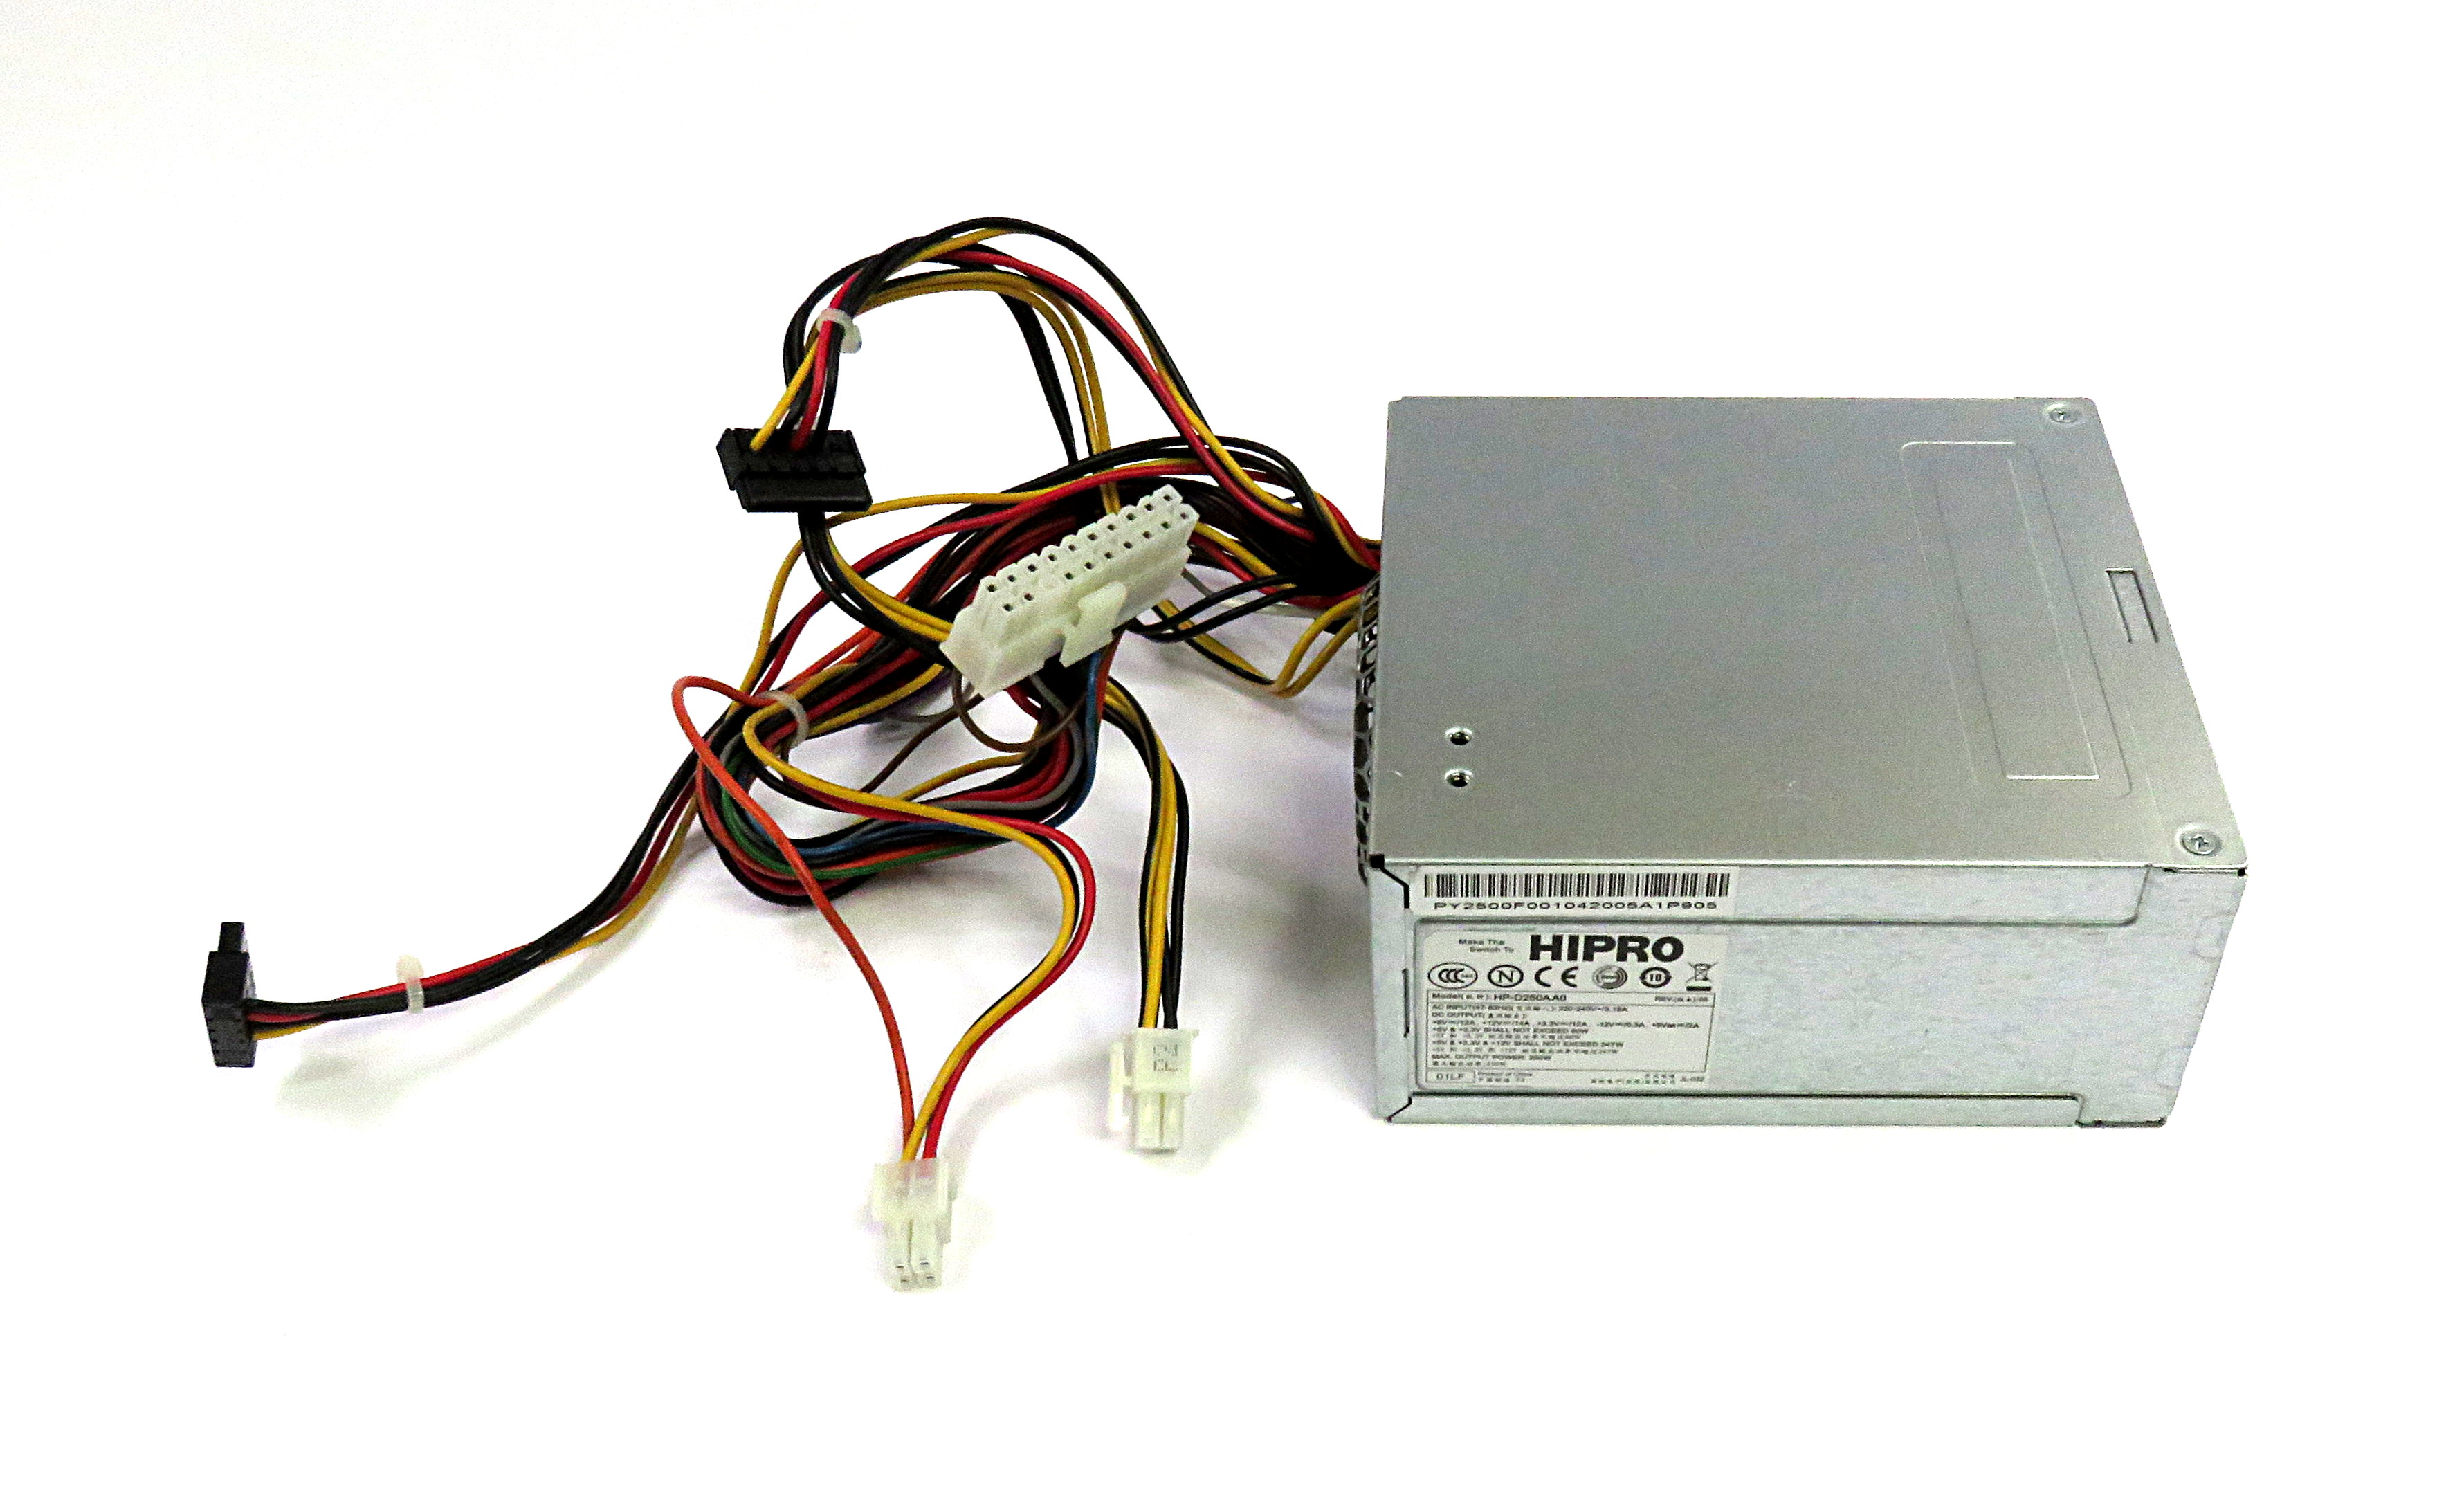 HP-D250AA0 HiPro 250W 20/24-Pin Power Supply